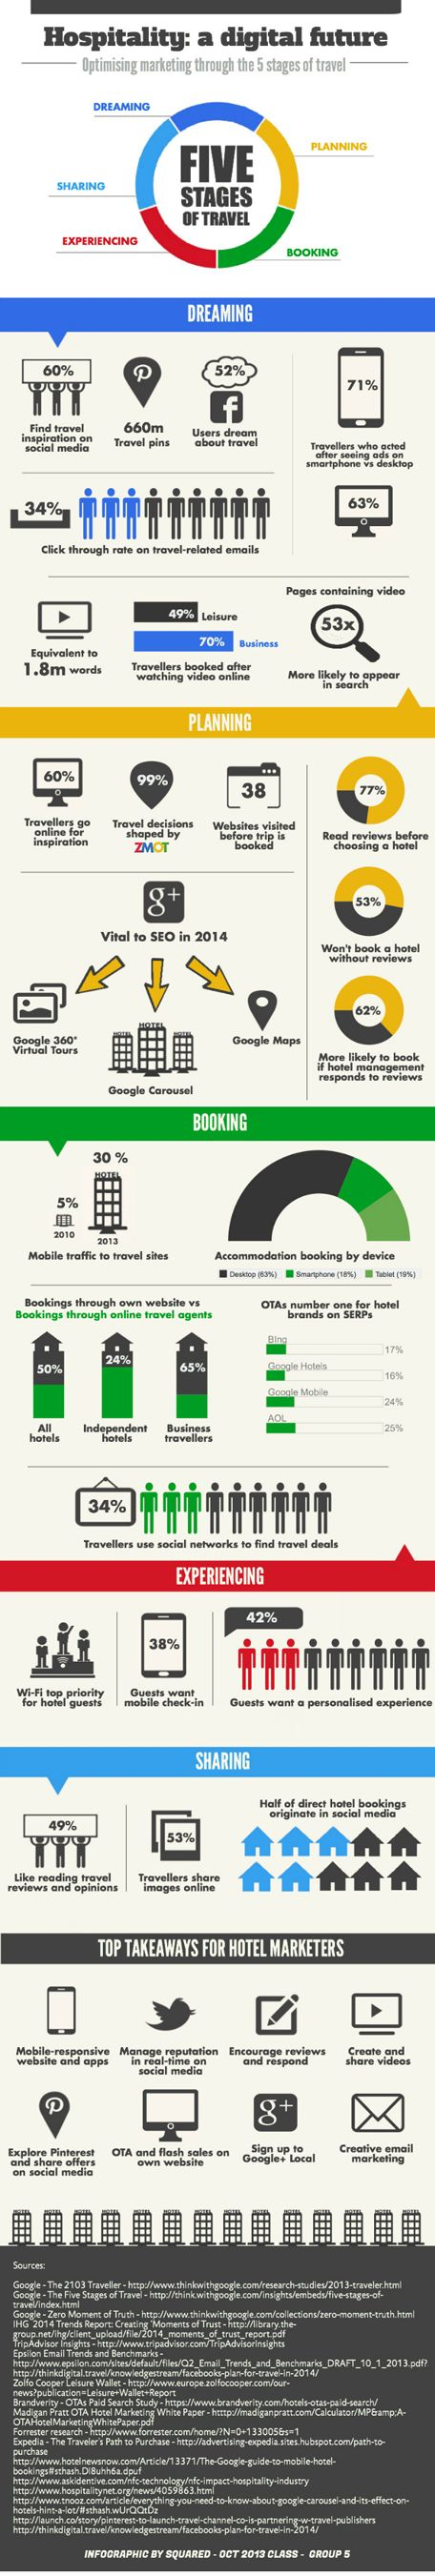 Infographic: Optimising hospitality marketing through the five stages of travel